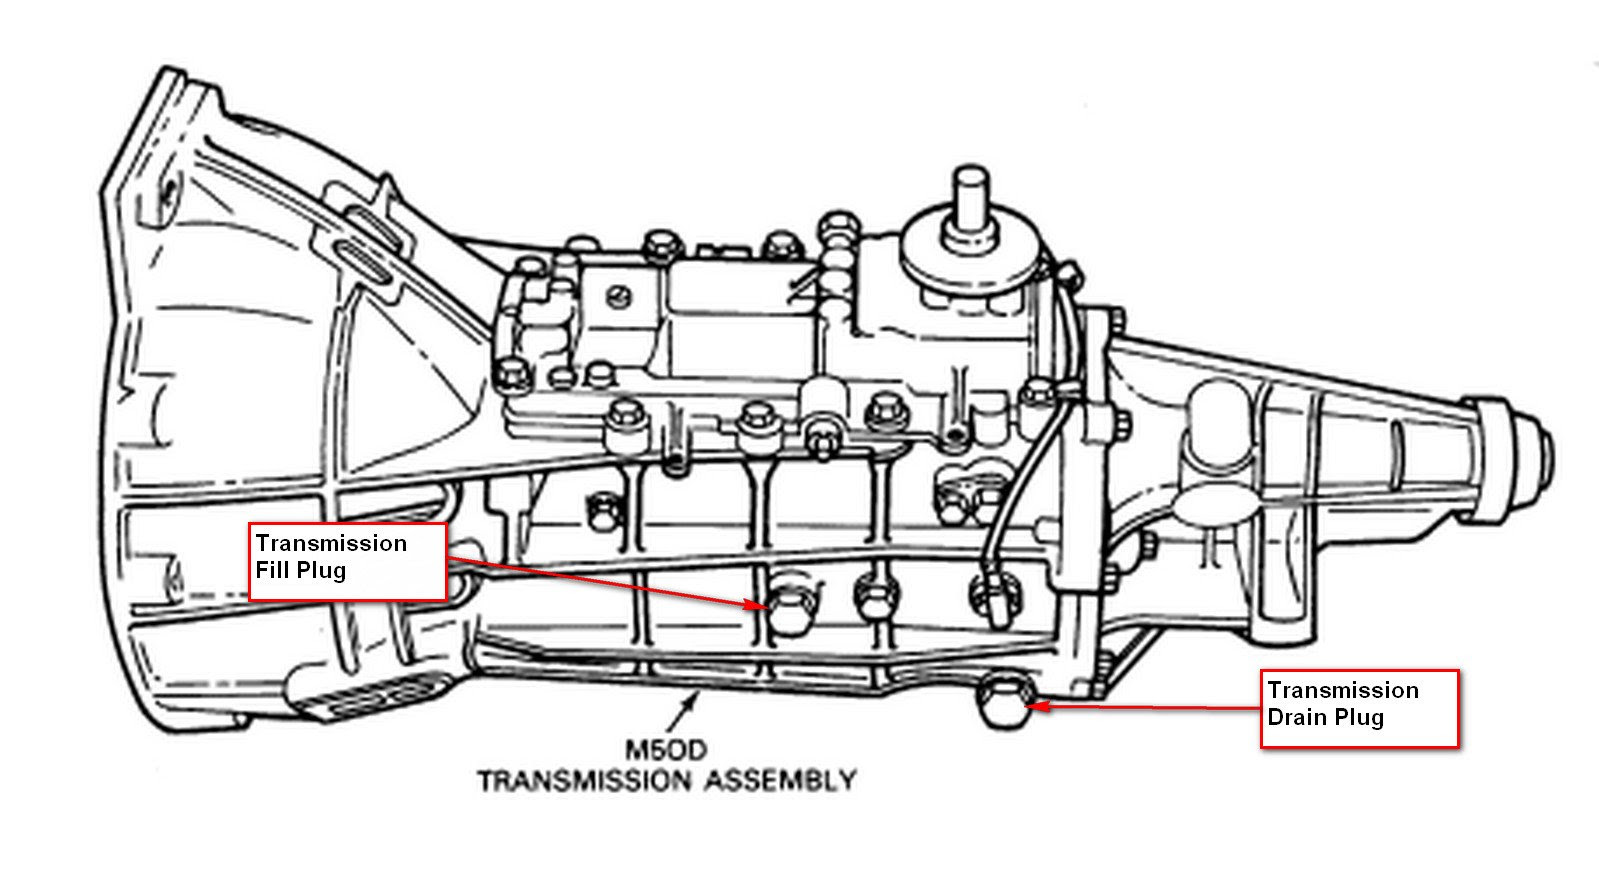 2002 Ford Ranger Transmission Diagram Wiring Diagram Central Central Pavimentos Tarima Es